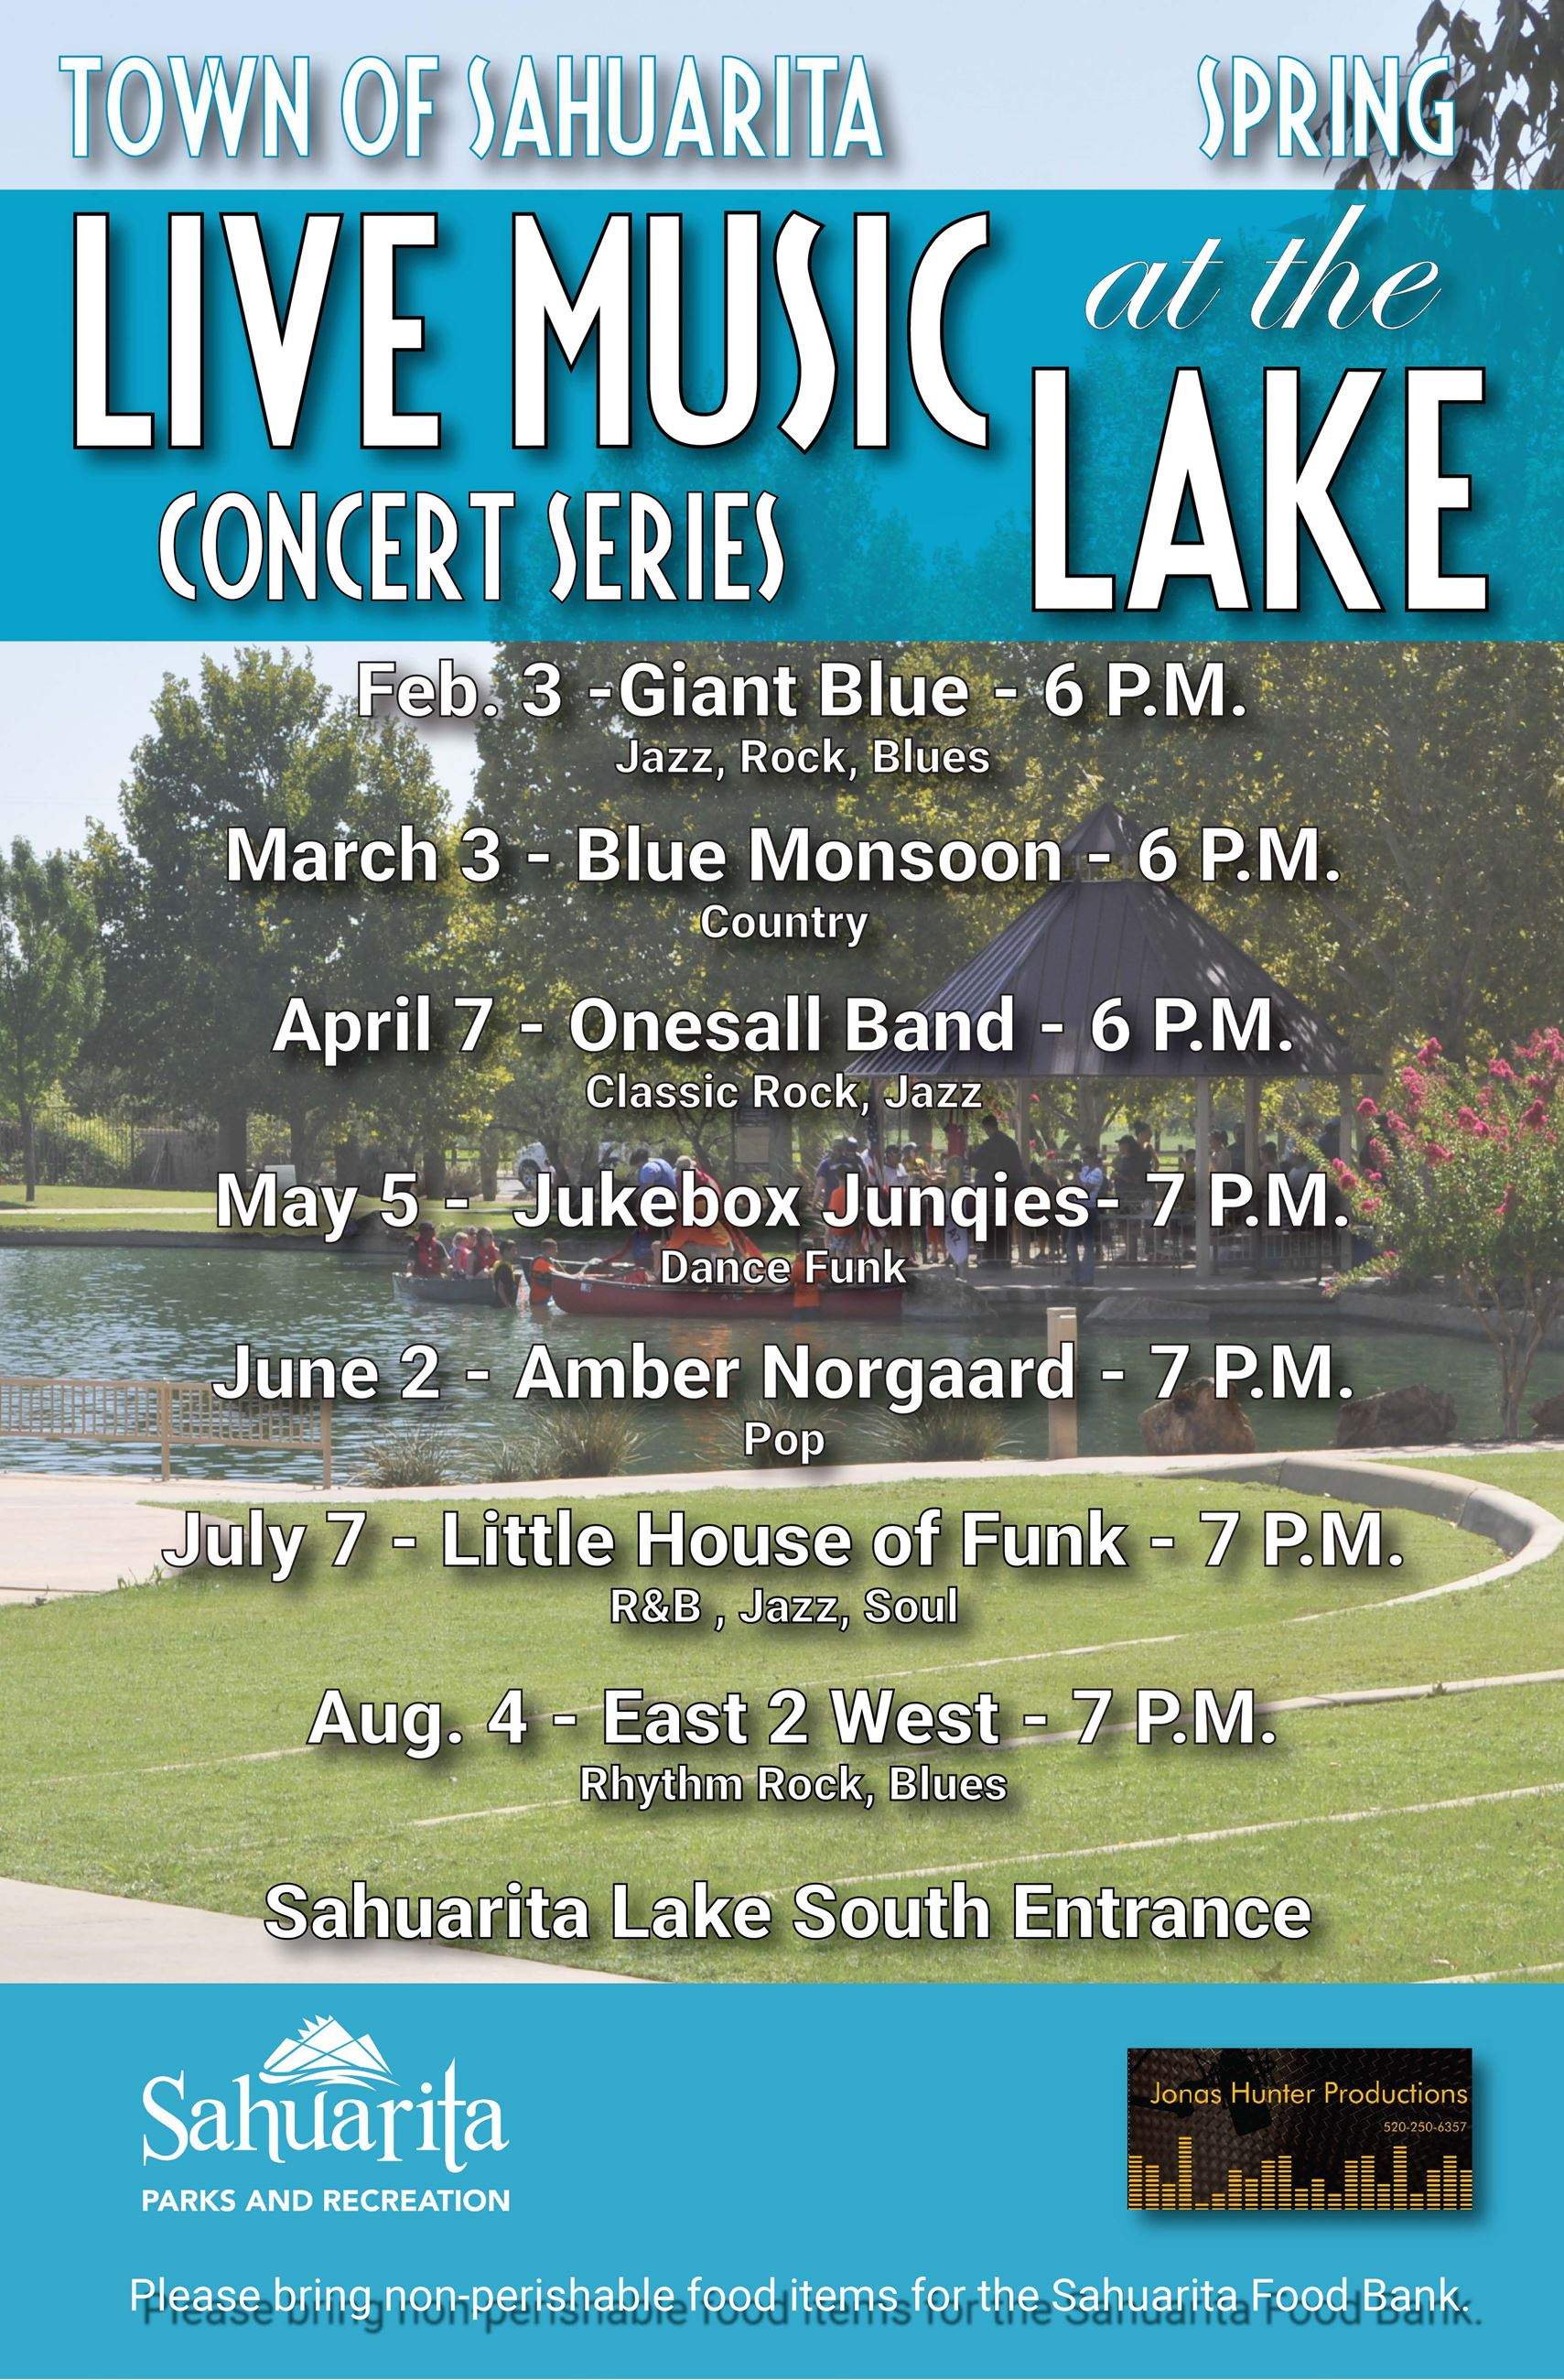 Live Music Concert Series